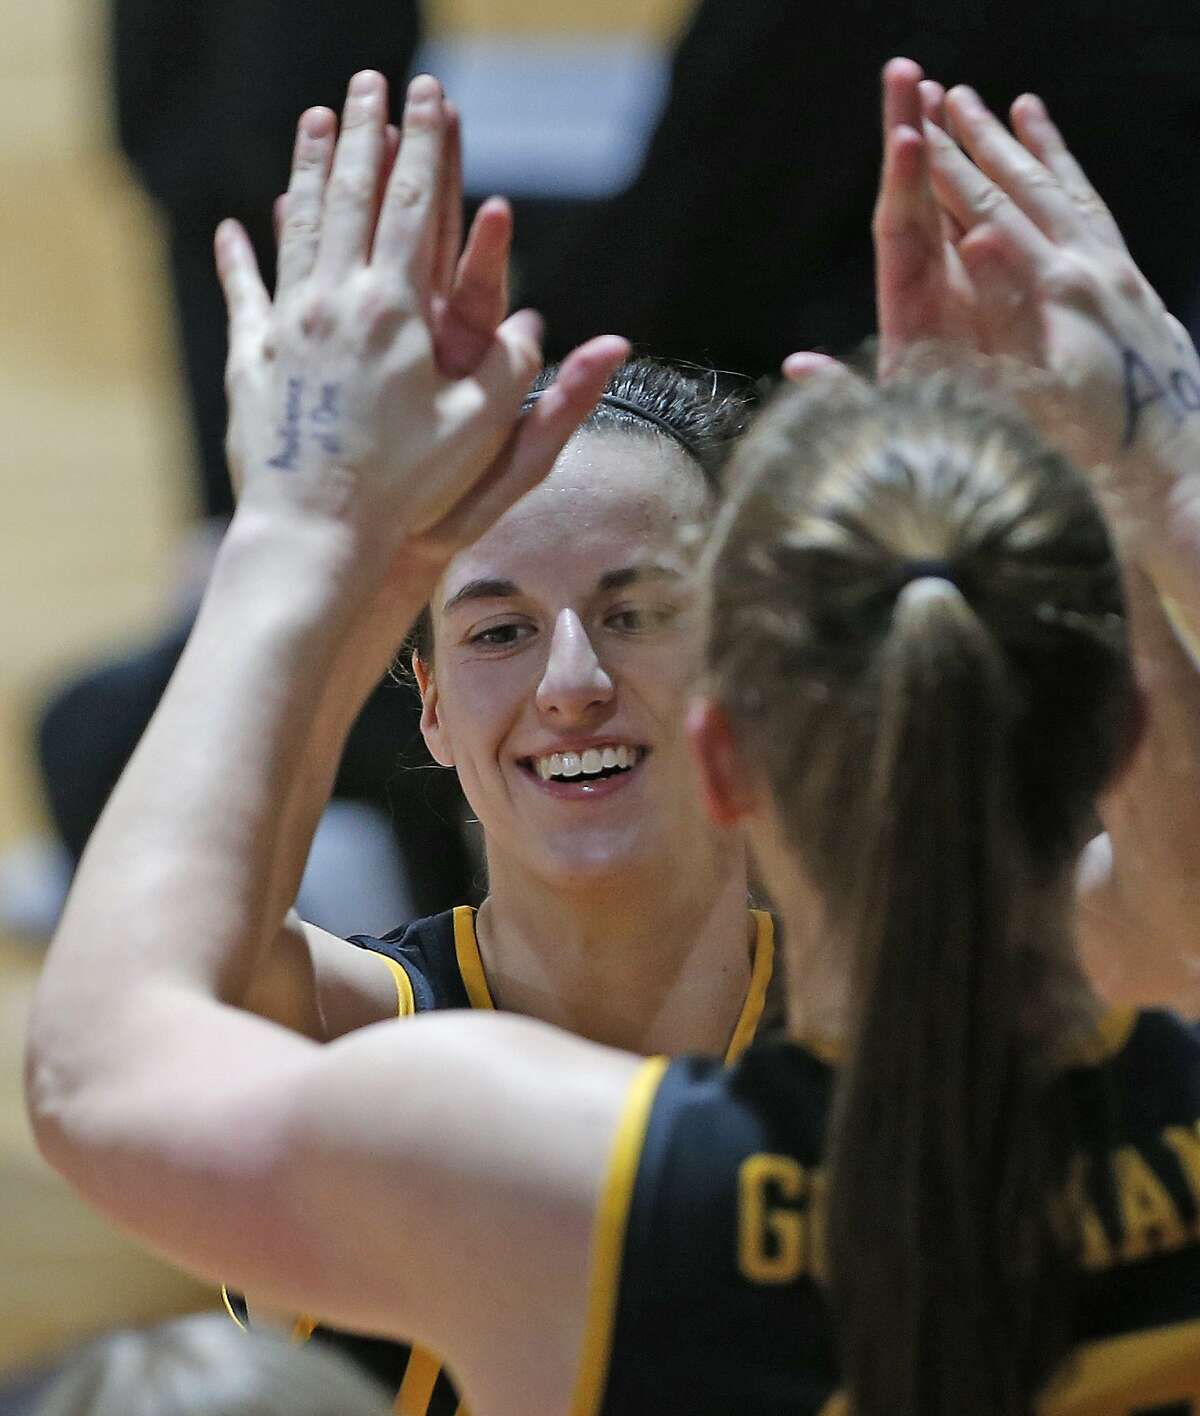 Iowa guard Caitlin Clark (22) receives high fives as she comes to the bench during the second half of a college basketball game in the second round of the women's NCAA tournament at the Greehey Arena in San Antonio, Tuesday, March 23, 2021. Iowa defeated Kentucky 86-72. (AP Photo/Ronald Cortes)